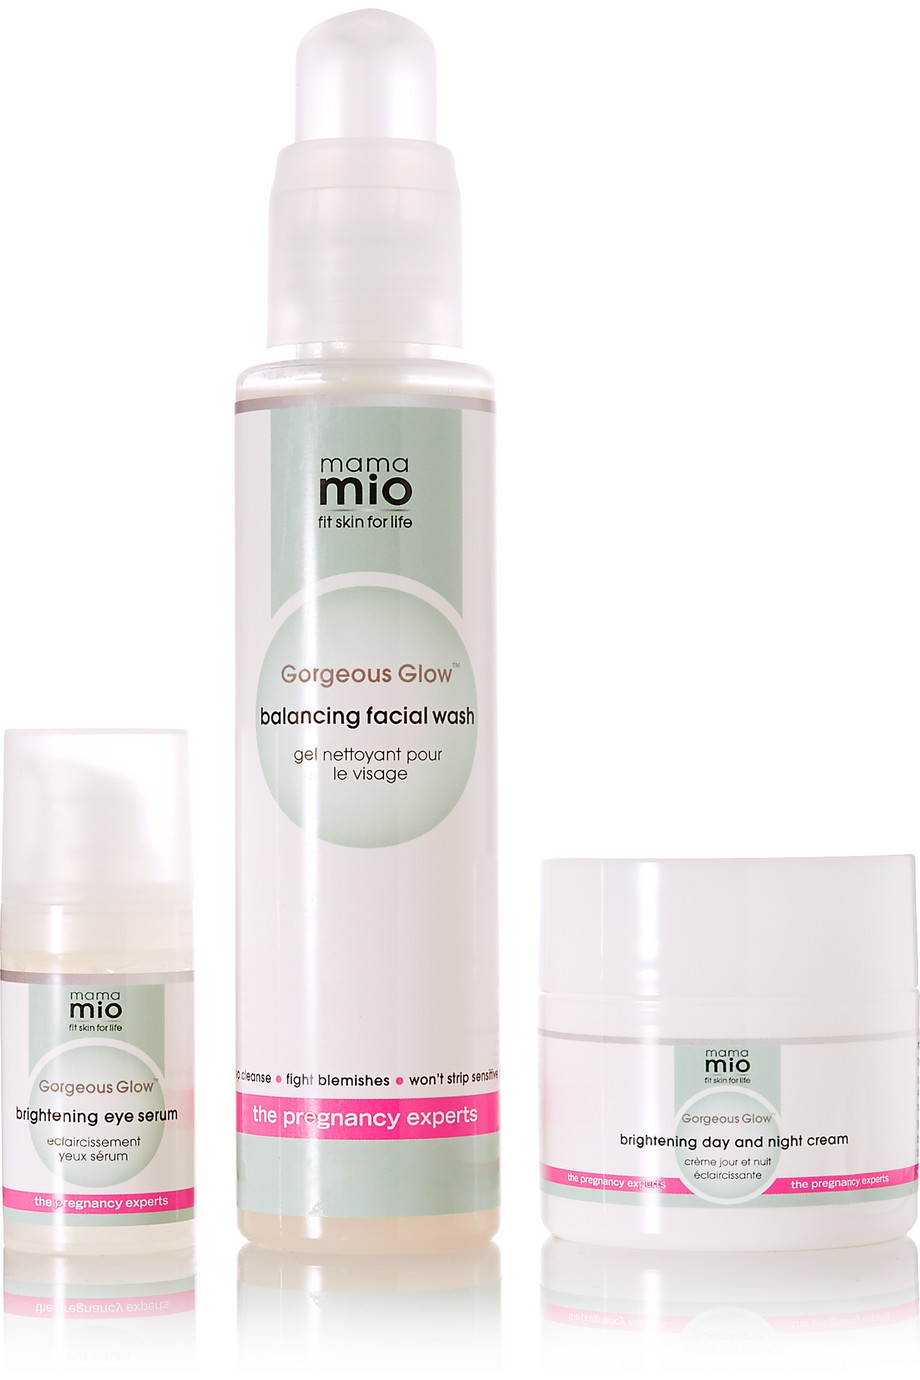 Gorgeous Glow 3 Step Skincare System, by Mama Mio